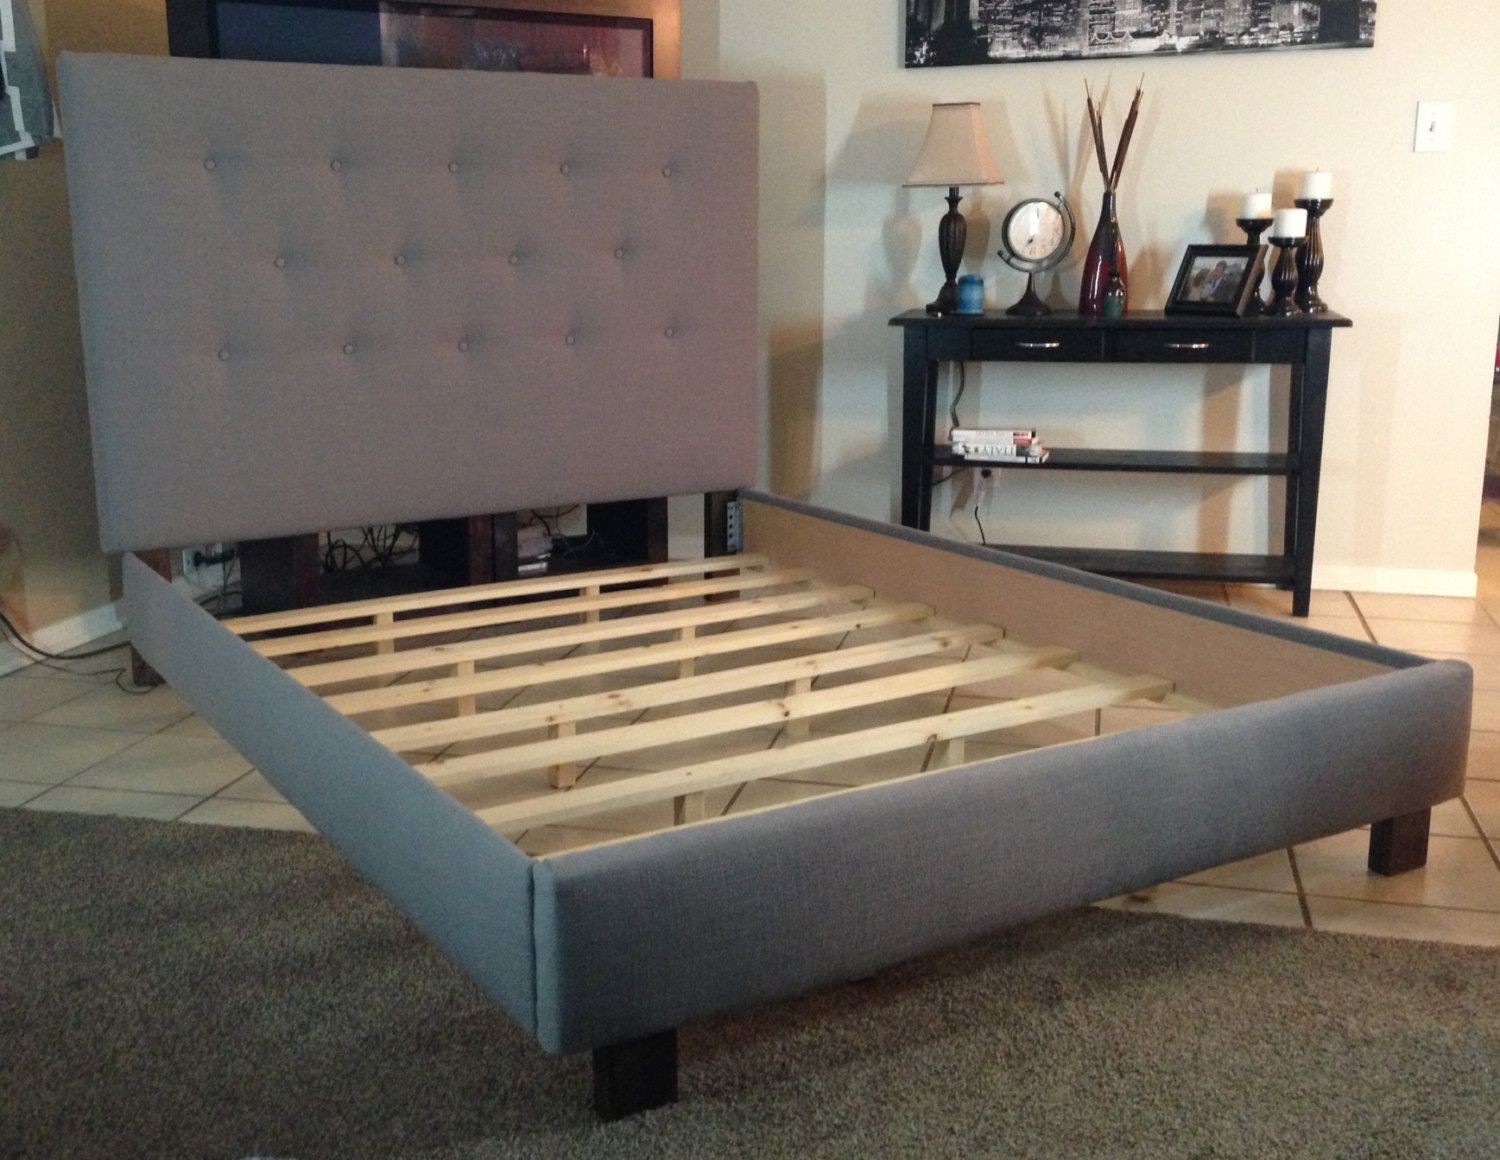 Bed headboard upholstered - Queen Or Full Size Headboard And Bed Frame Gray Linen Upholstered By Lilykayy On Etsy